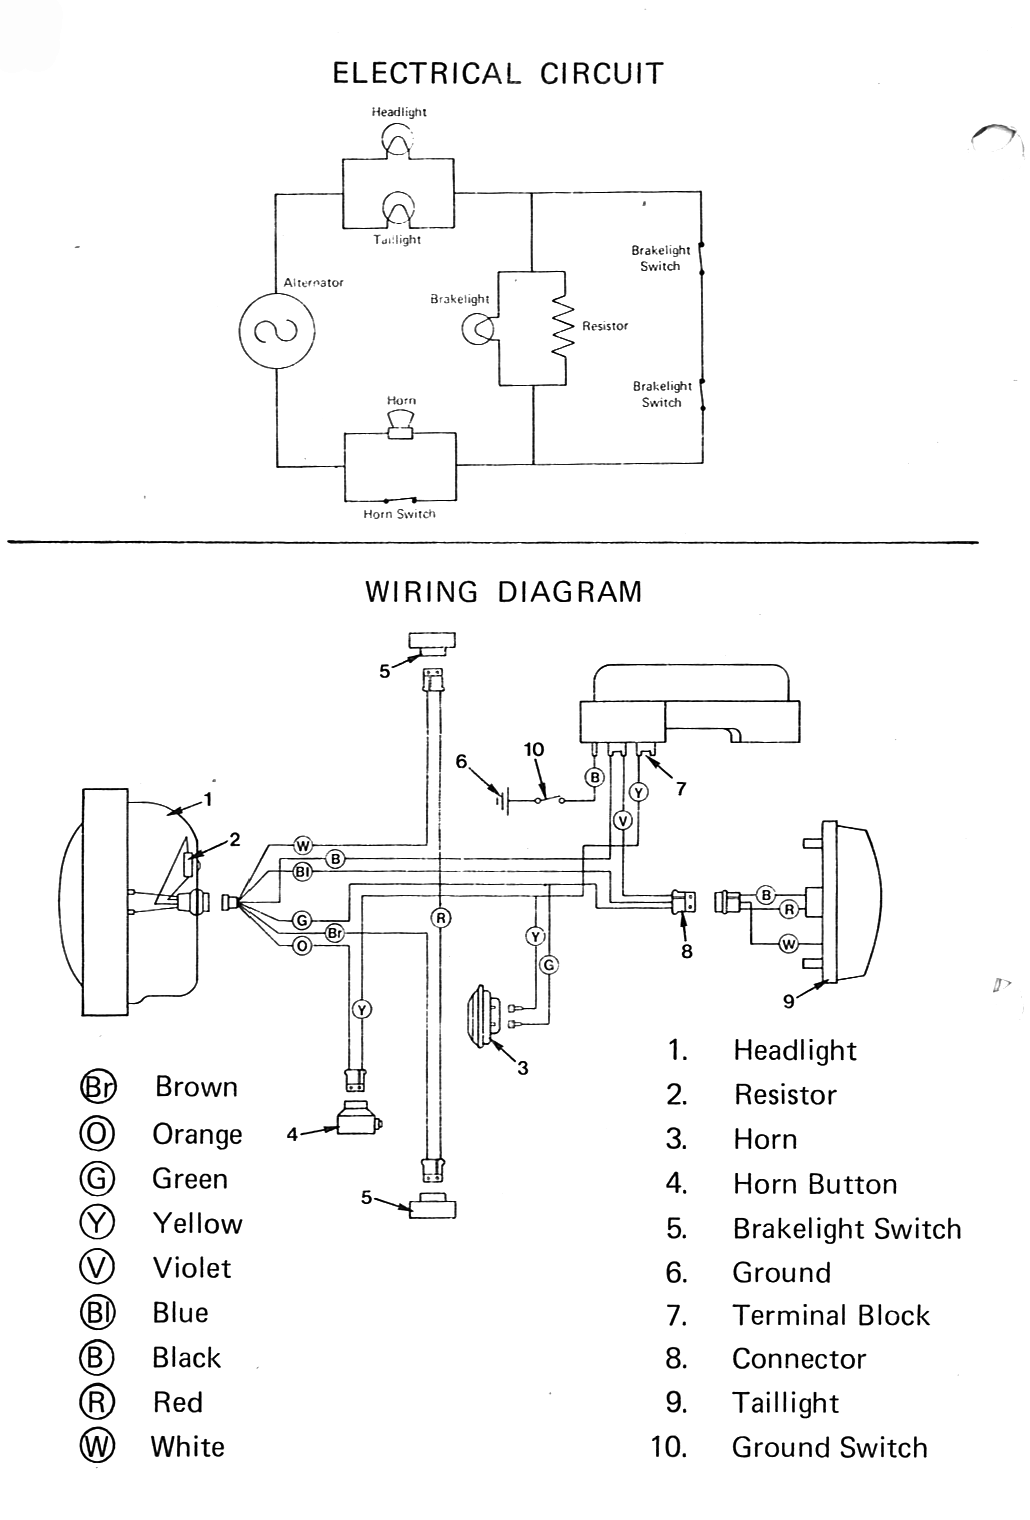 Suzuki C50 Wiring Diagram Master Blogs 2005 Boulevard Schematic 1987 Enduro Simple Schema Rh 2 Aspire Atlantis De 2006